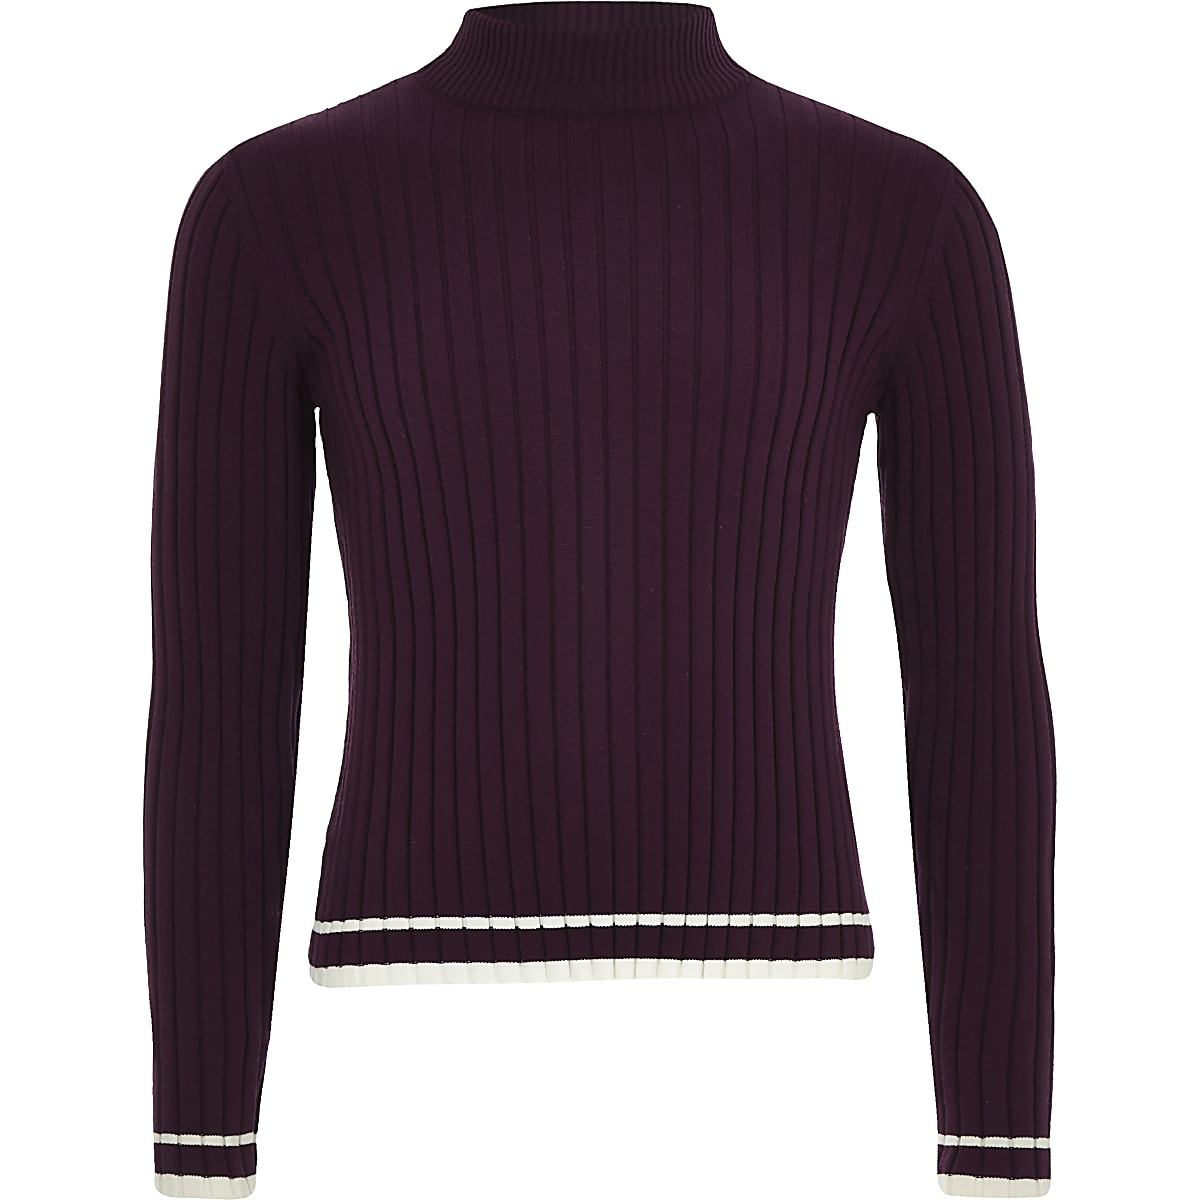 Girls purple knit ribbed tipped high neck top